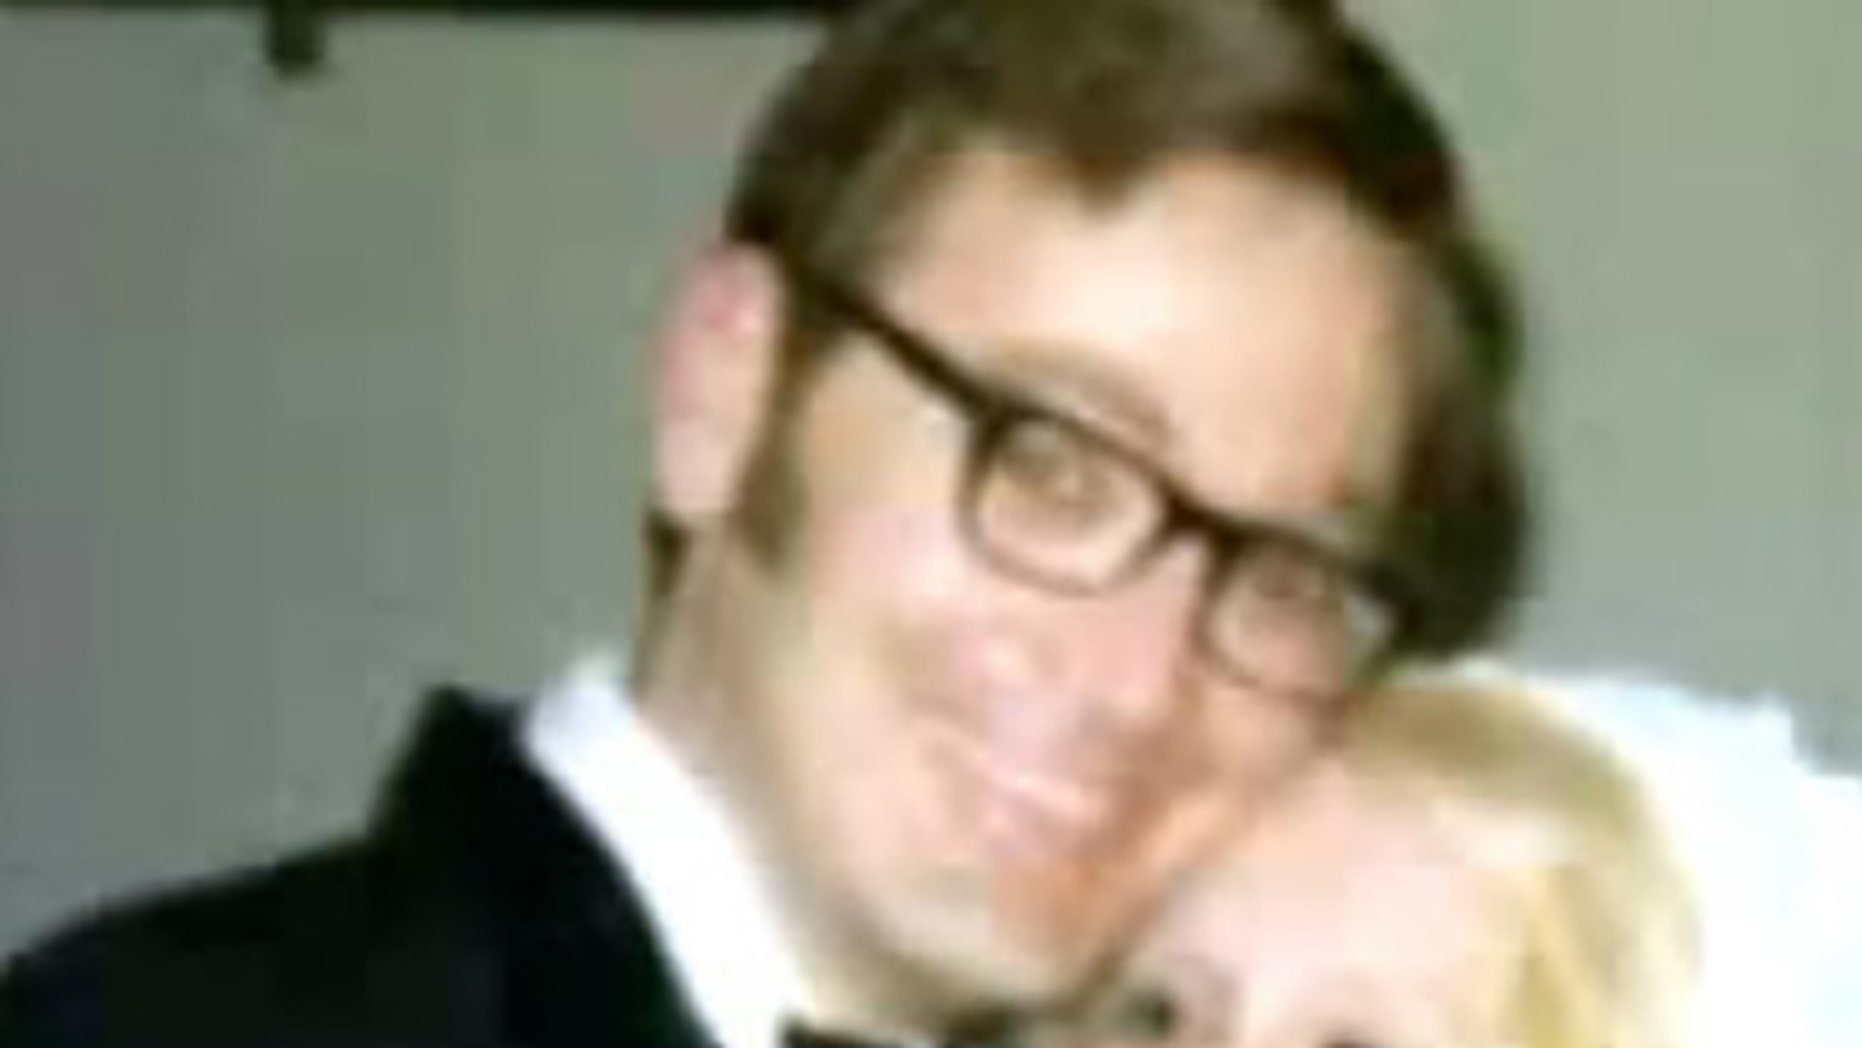 Donnie Rudd faces murder charges in the death of his wife more than four decades ago.